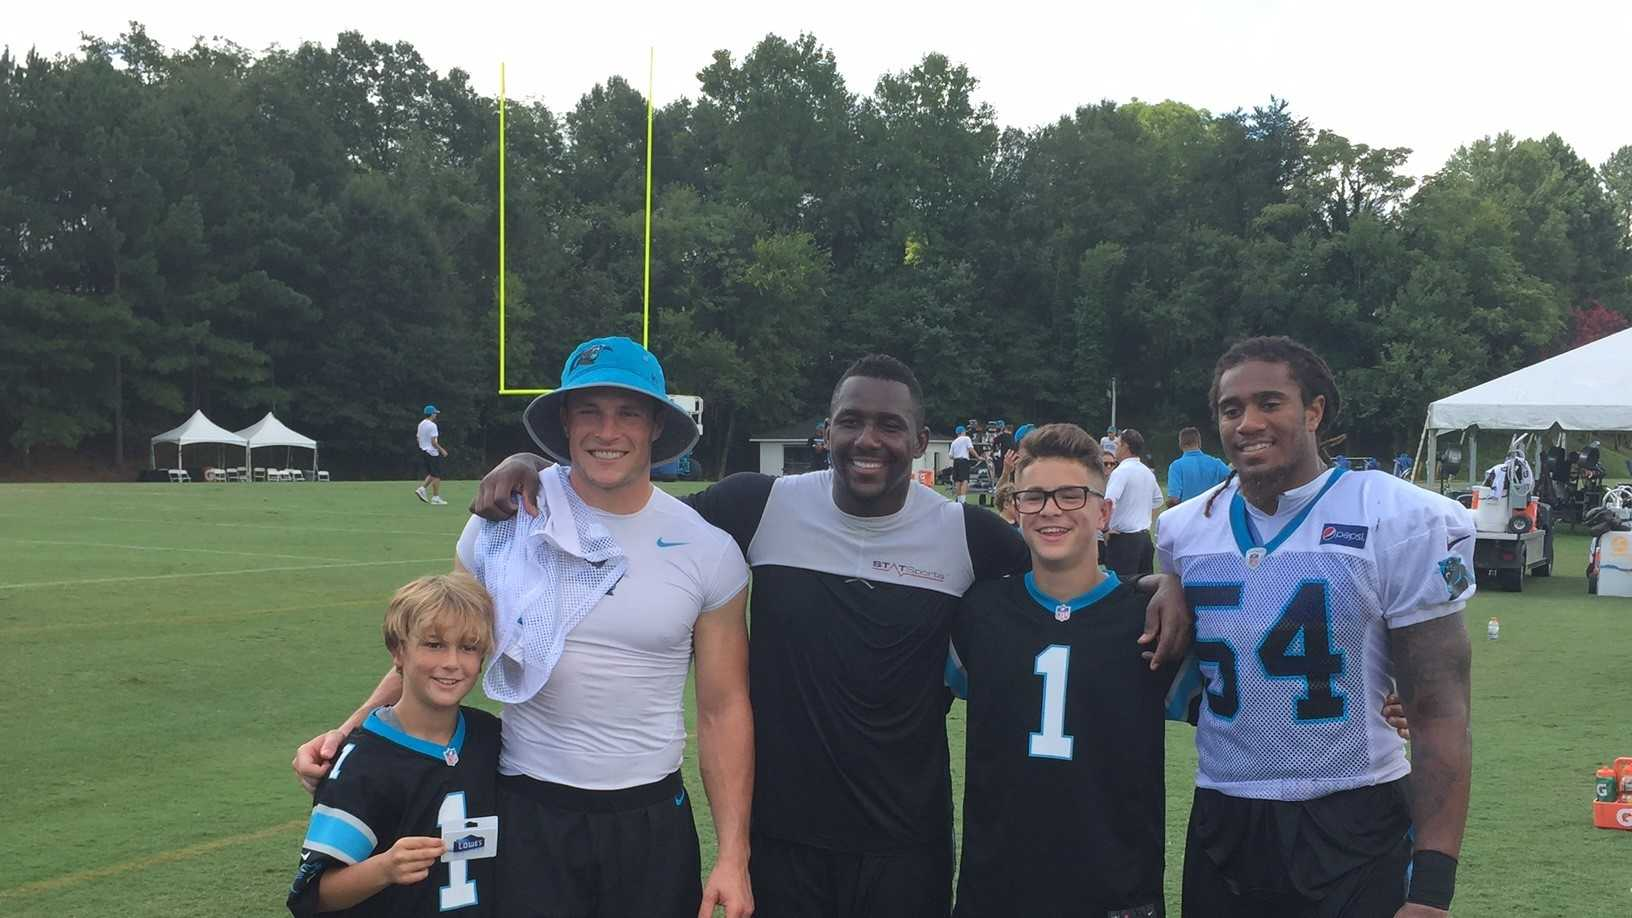 Anthony Prastio of Upstate New York was the 100,000th fan to visit Panthers training camp.